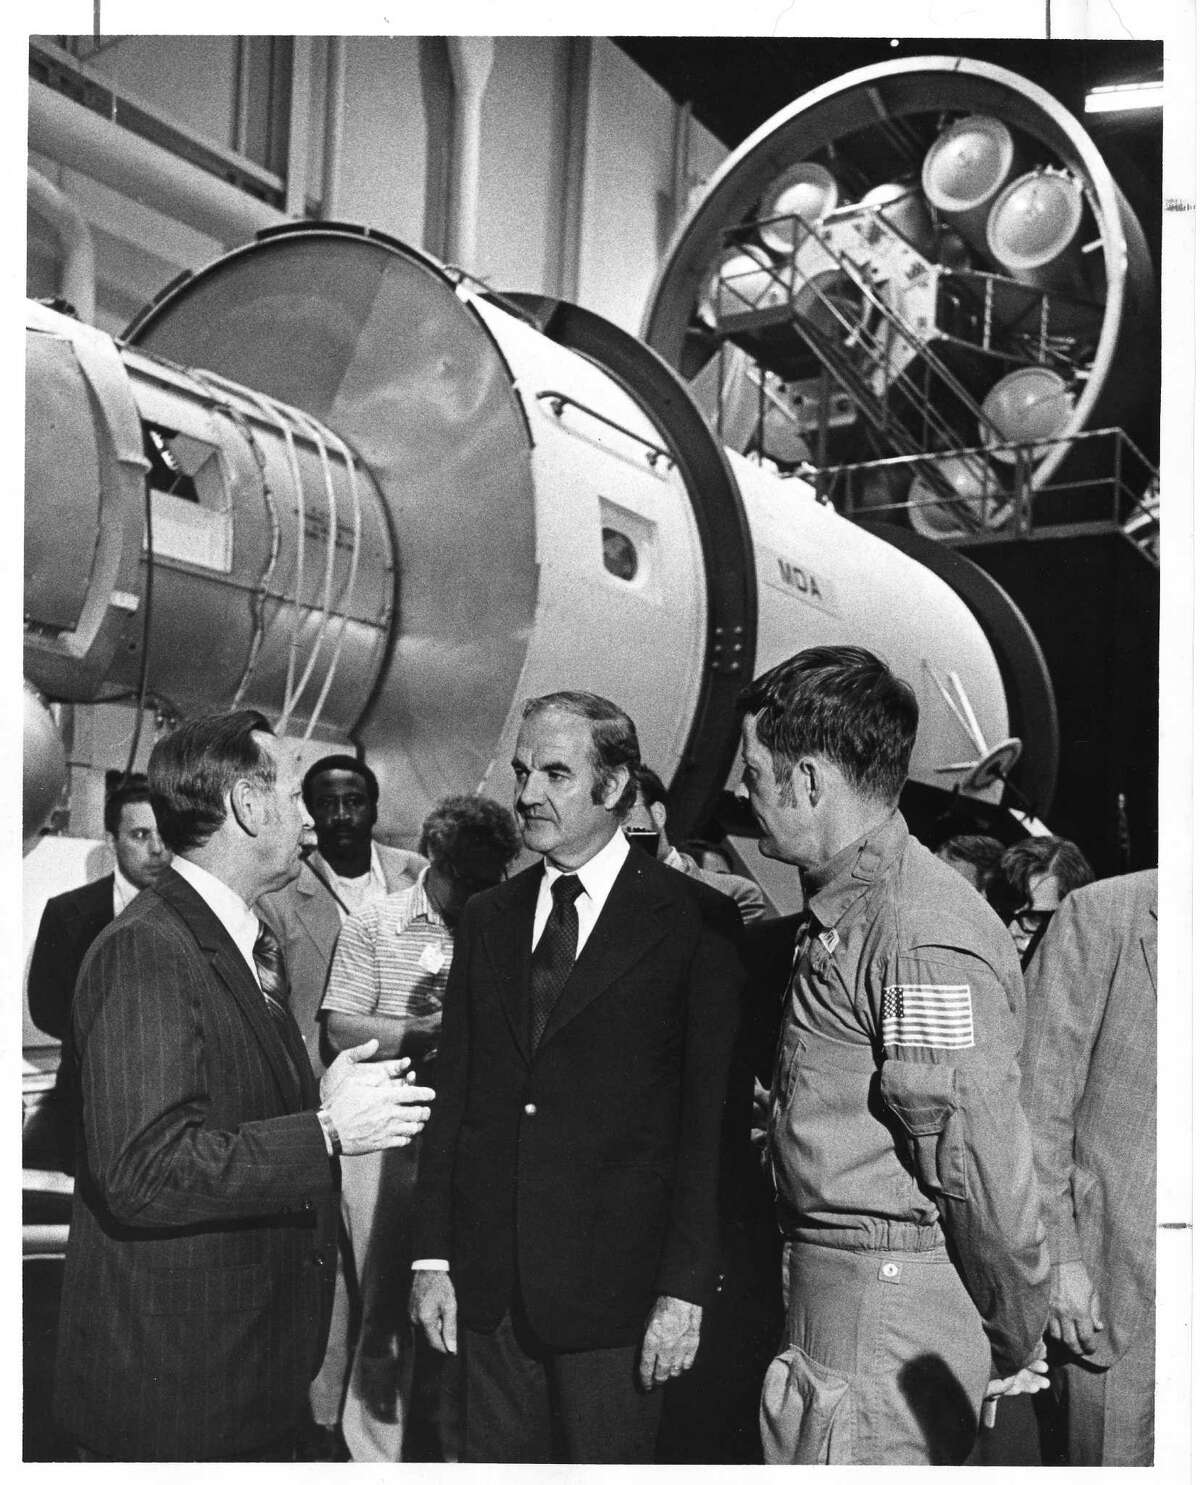 Christopher Kraft, left, joins Sen. George McGovern and astro-naut Joe Kerwin during a briefing in 1972 at the Manned Space Craft Center, later renamed the Lyndon B. Johnson Space Center.